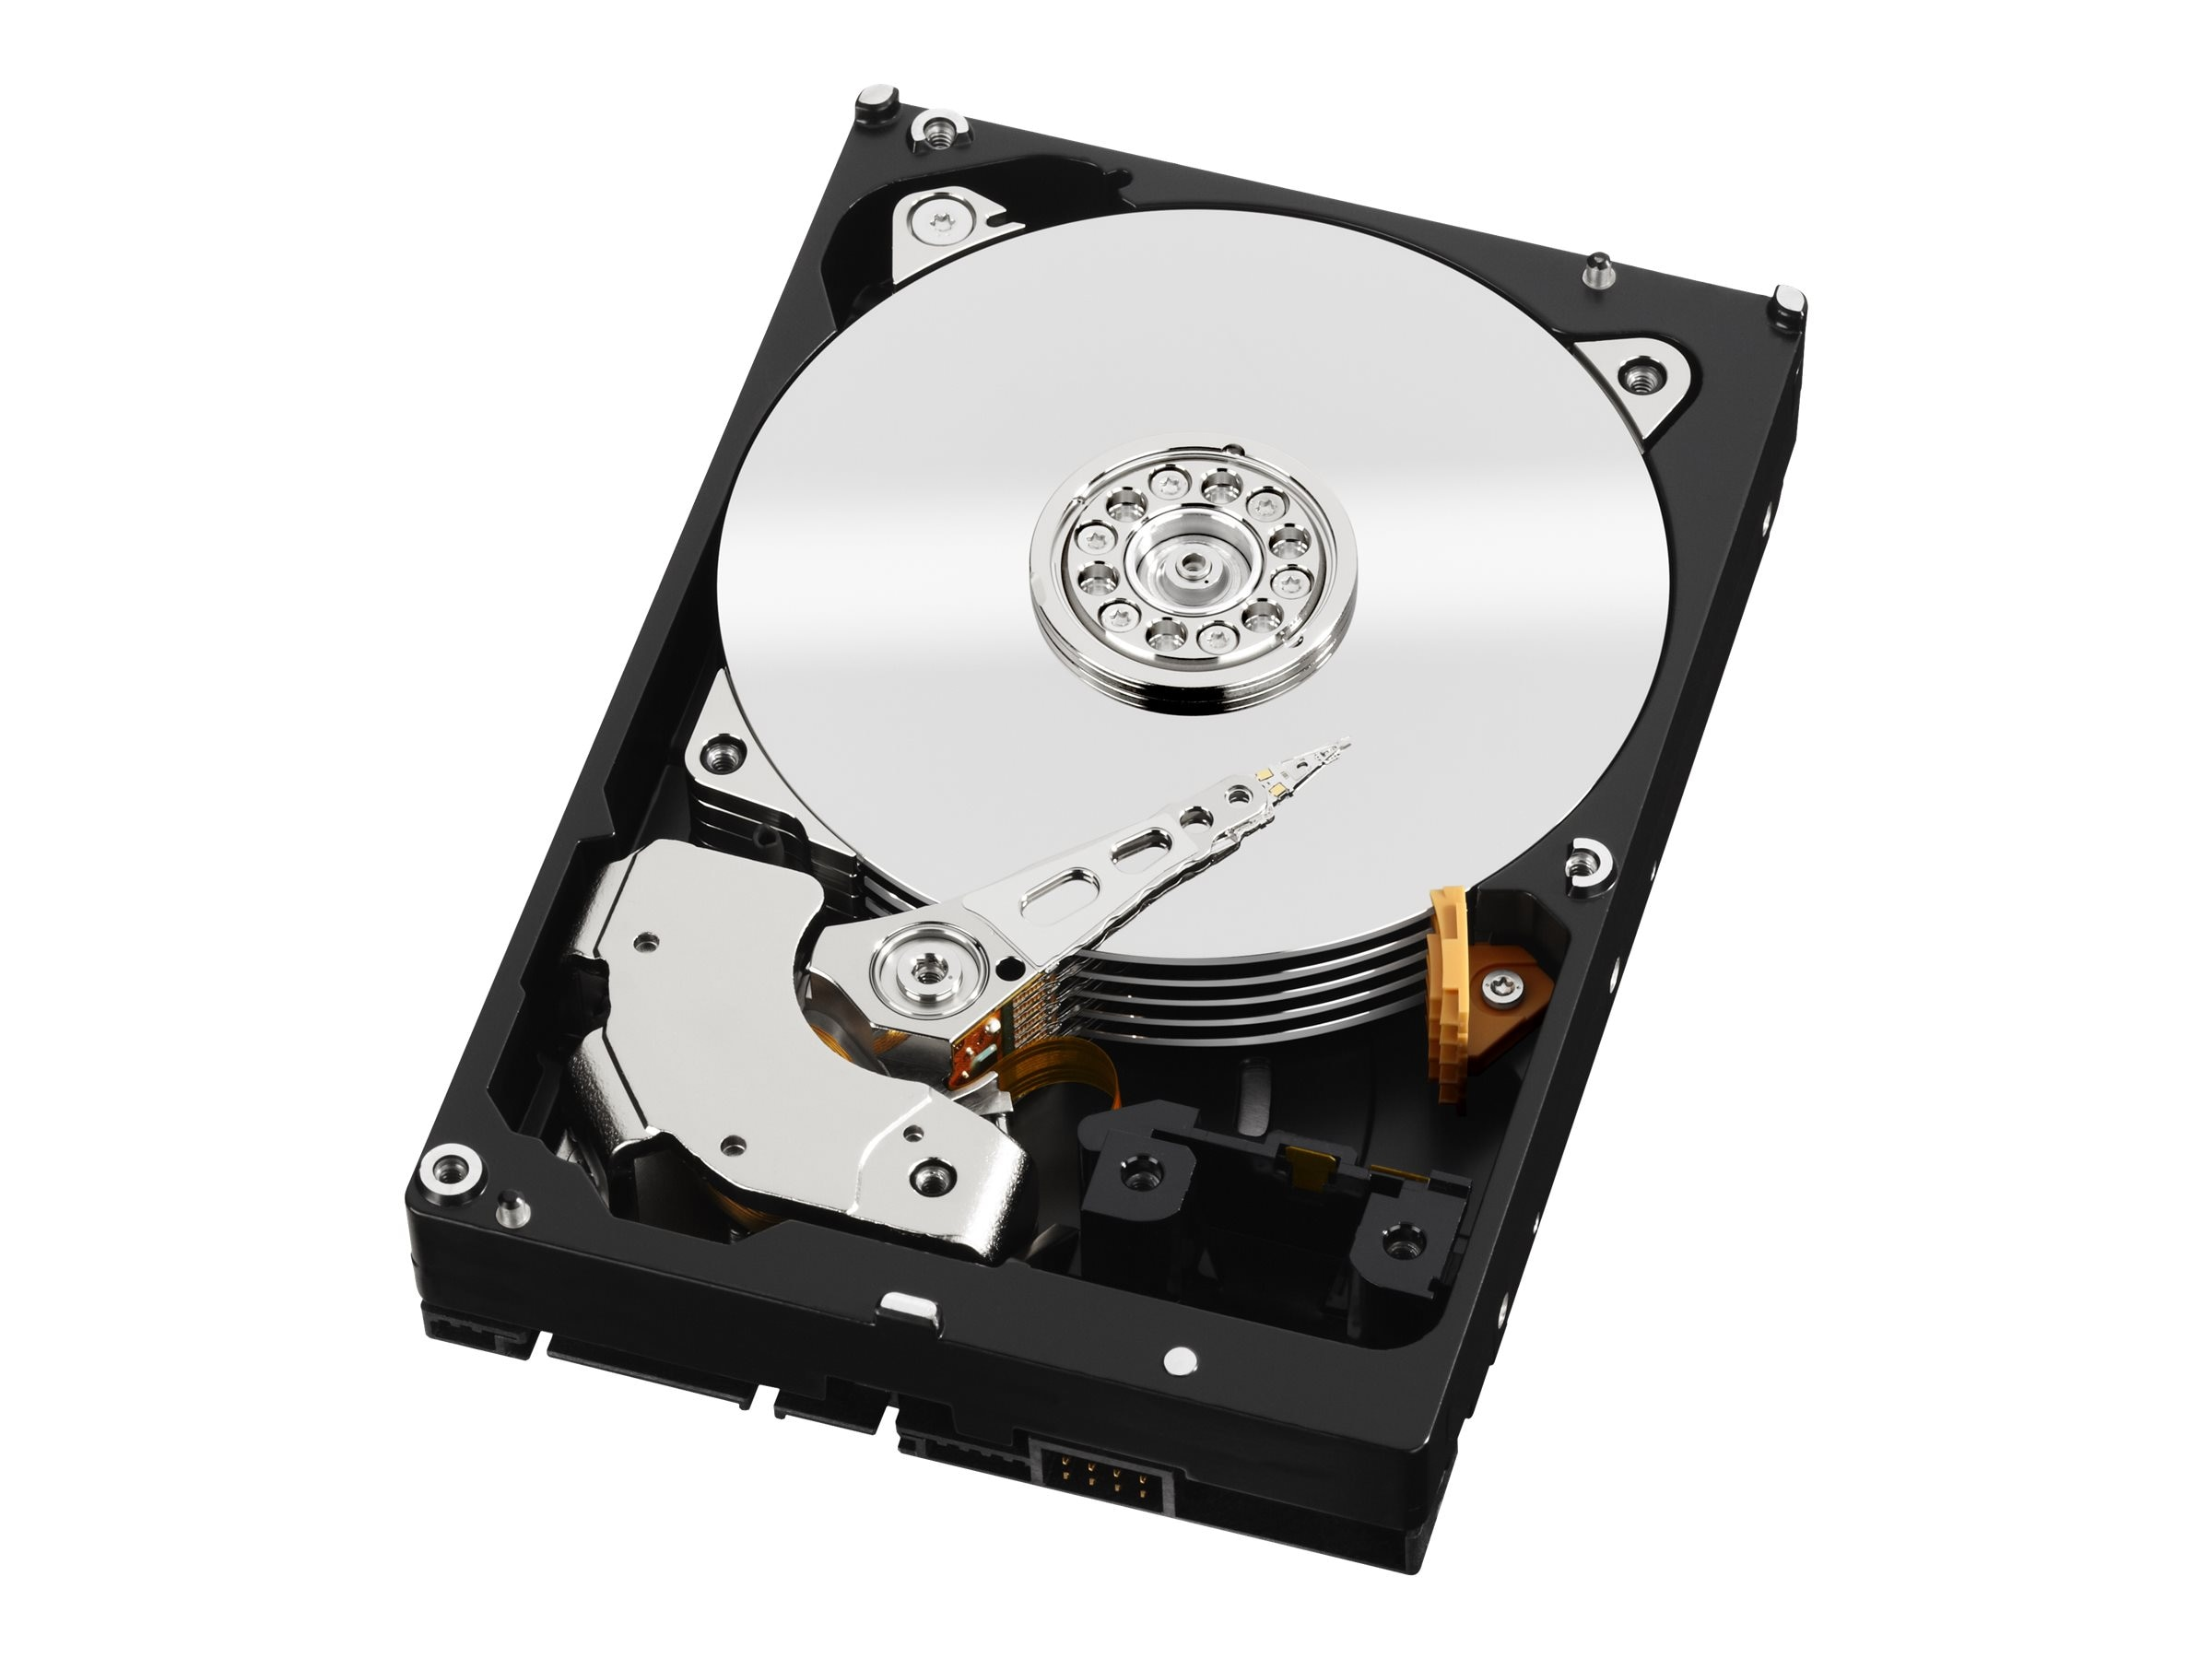 WD 500GB WD RE SATA 6Gb s 3.5 Internal Hard Drive - 64MB Cache, WD5003ABYZ, 15775221, Hard Drives - Internal